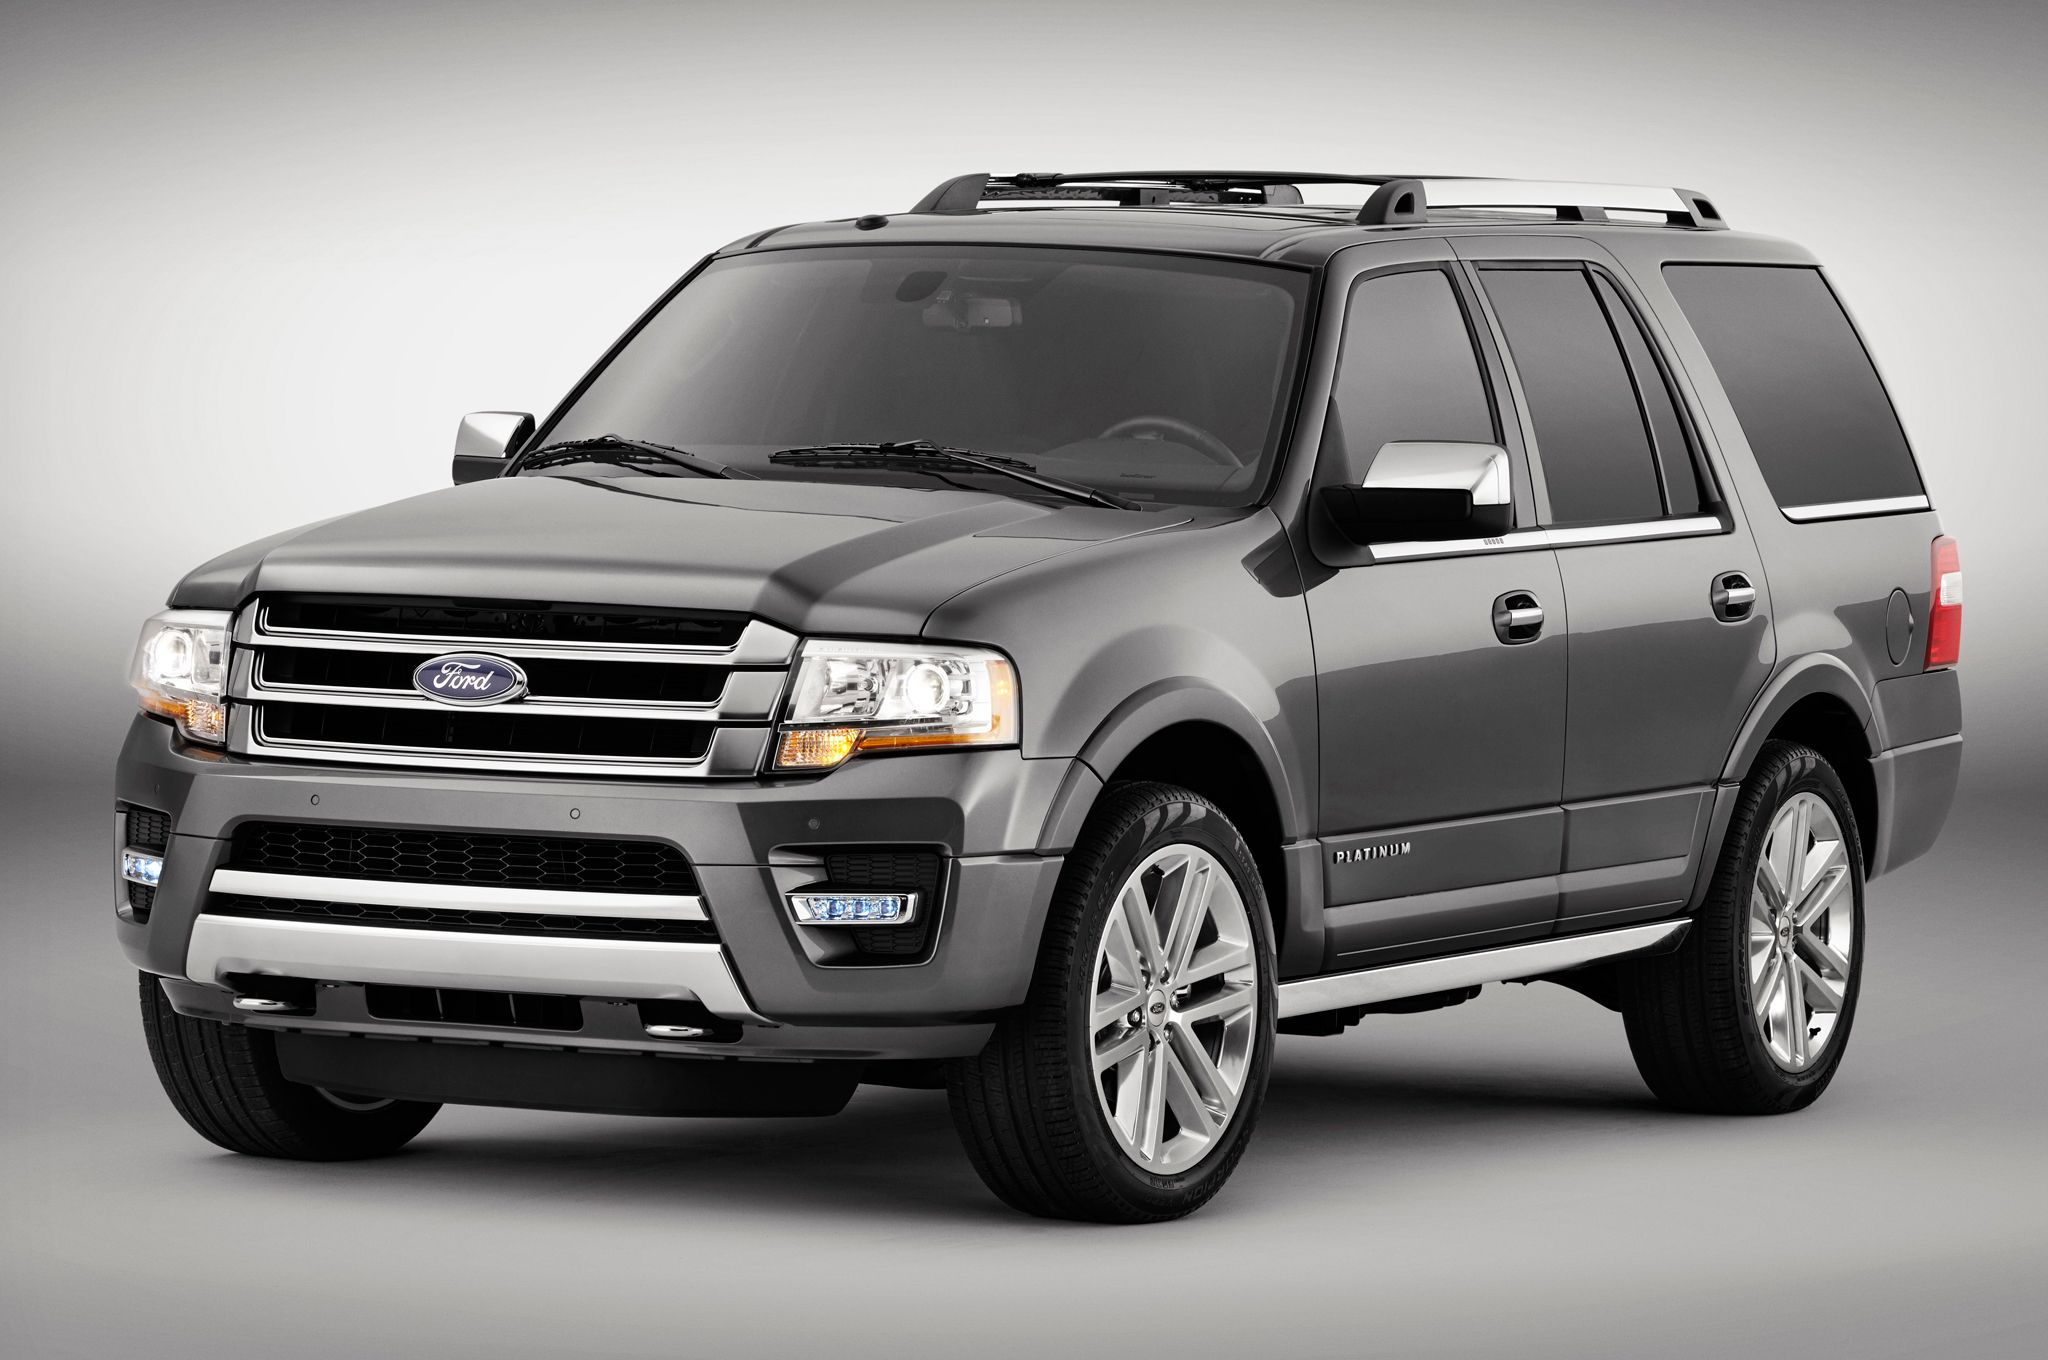 Specs For The Ford Expedition Are Revealed Http - All ford models 2016